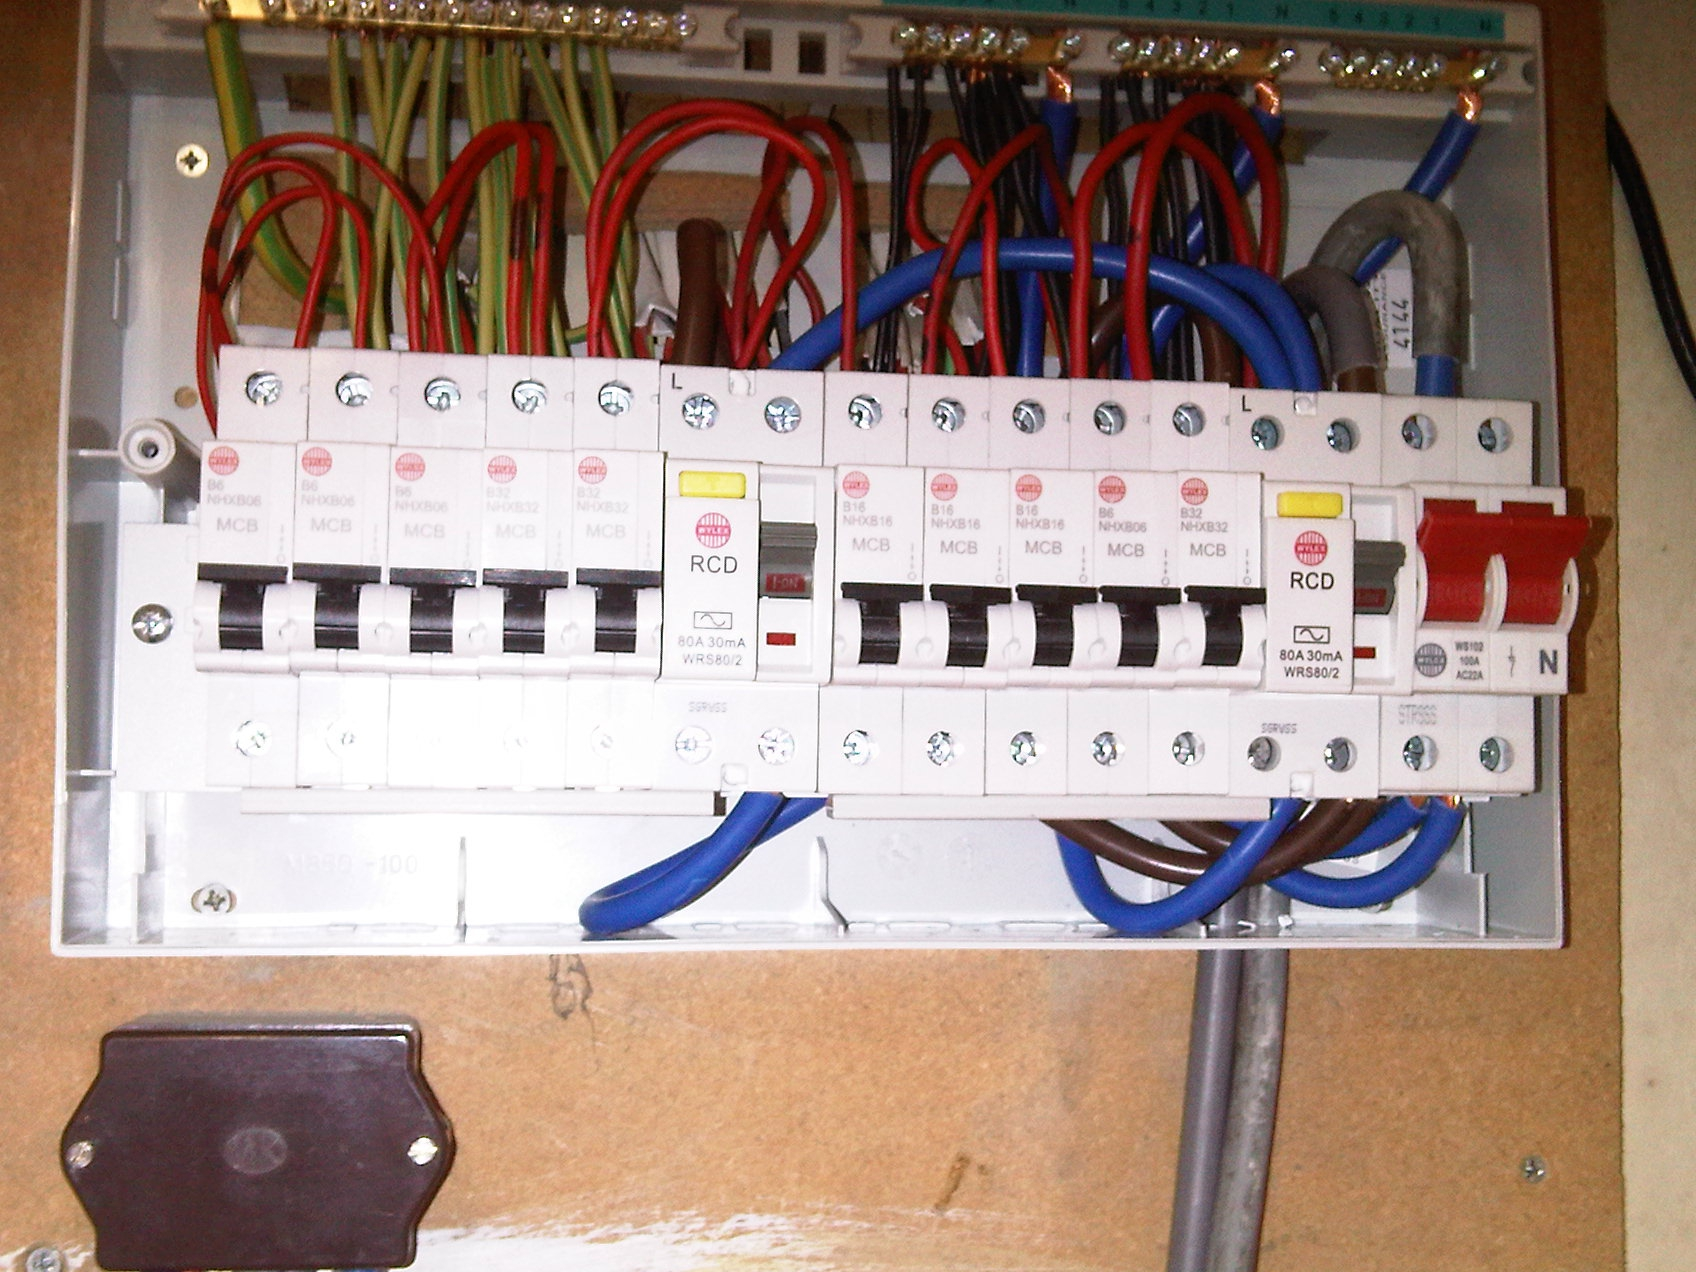 Fusebox 4 fuse switch box 120v electrical switch wiring diagrams \u2022 wiring fuse box in house at aneh.co